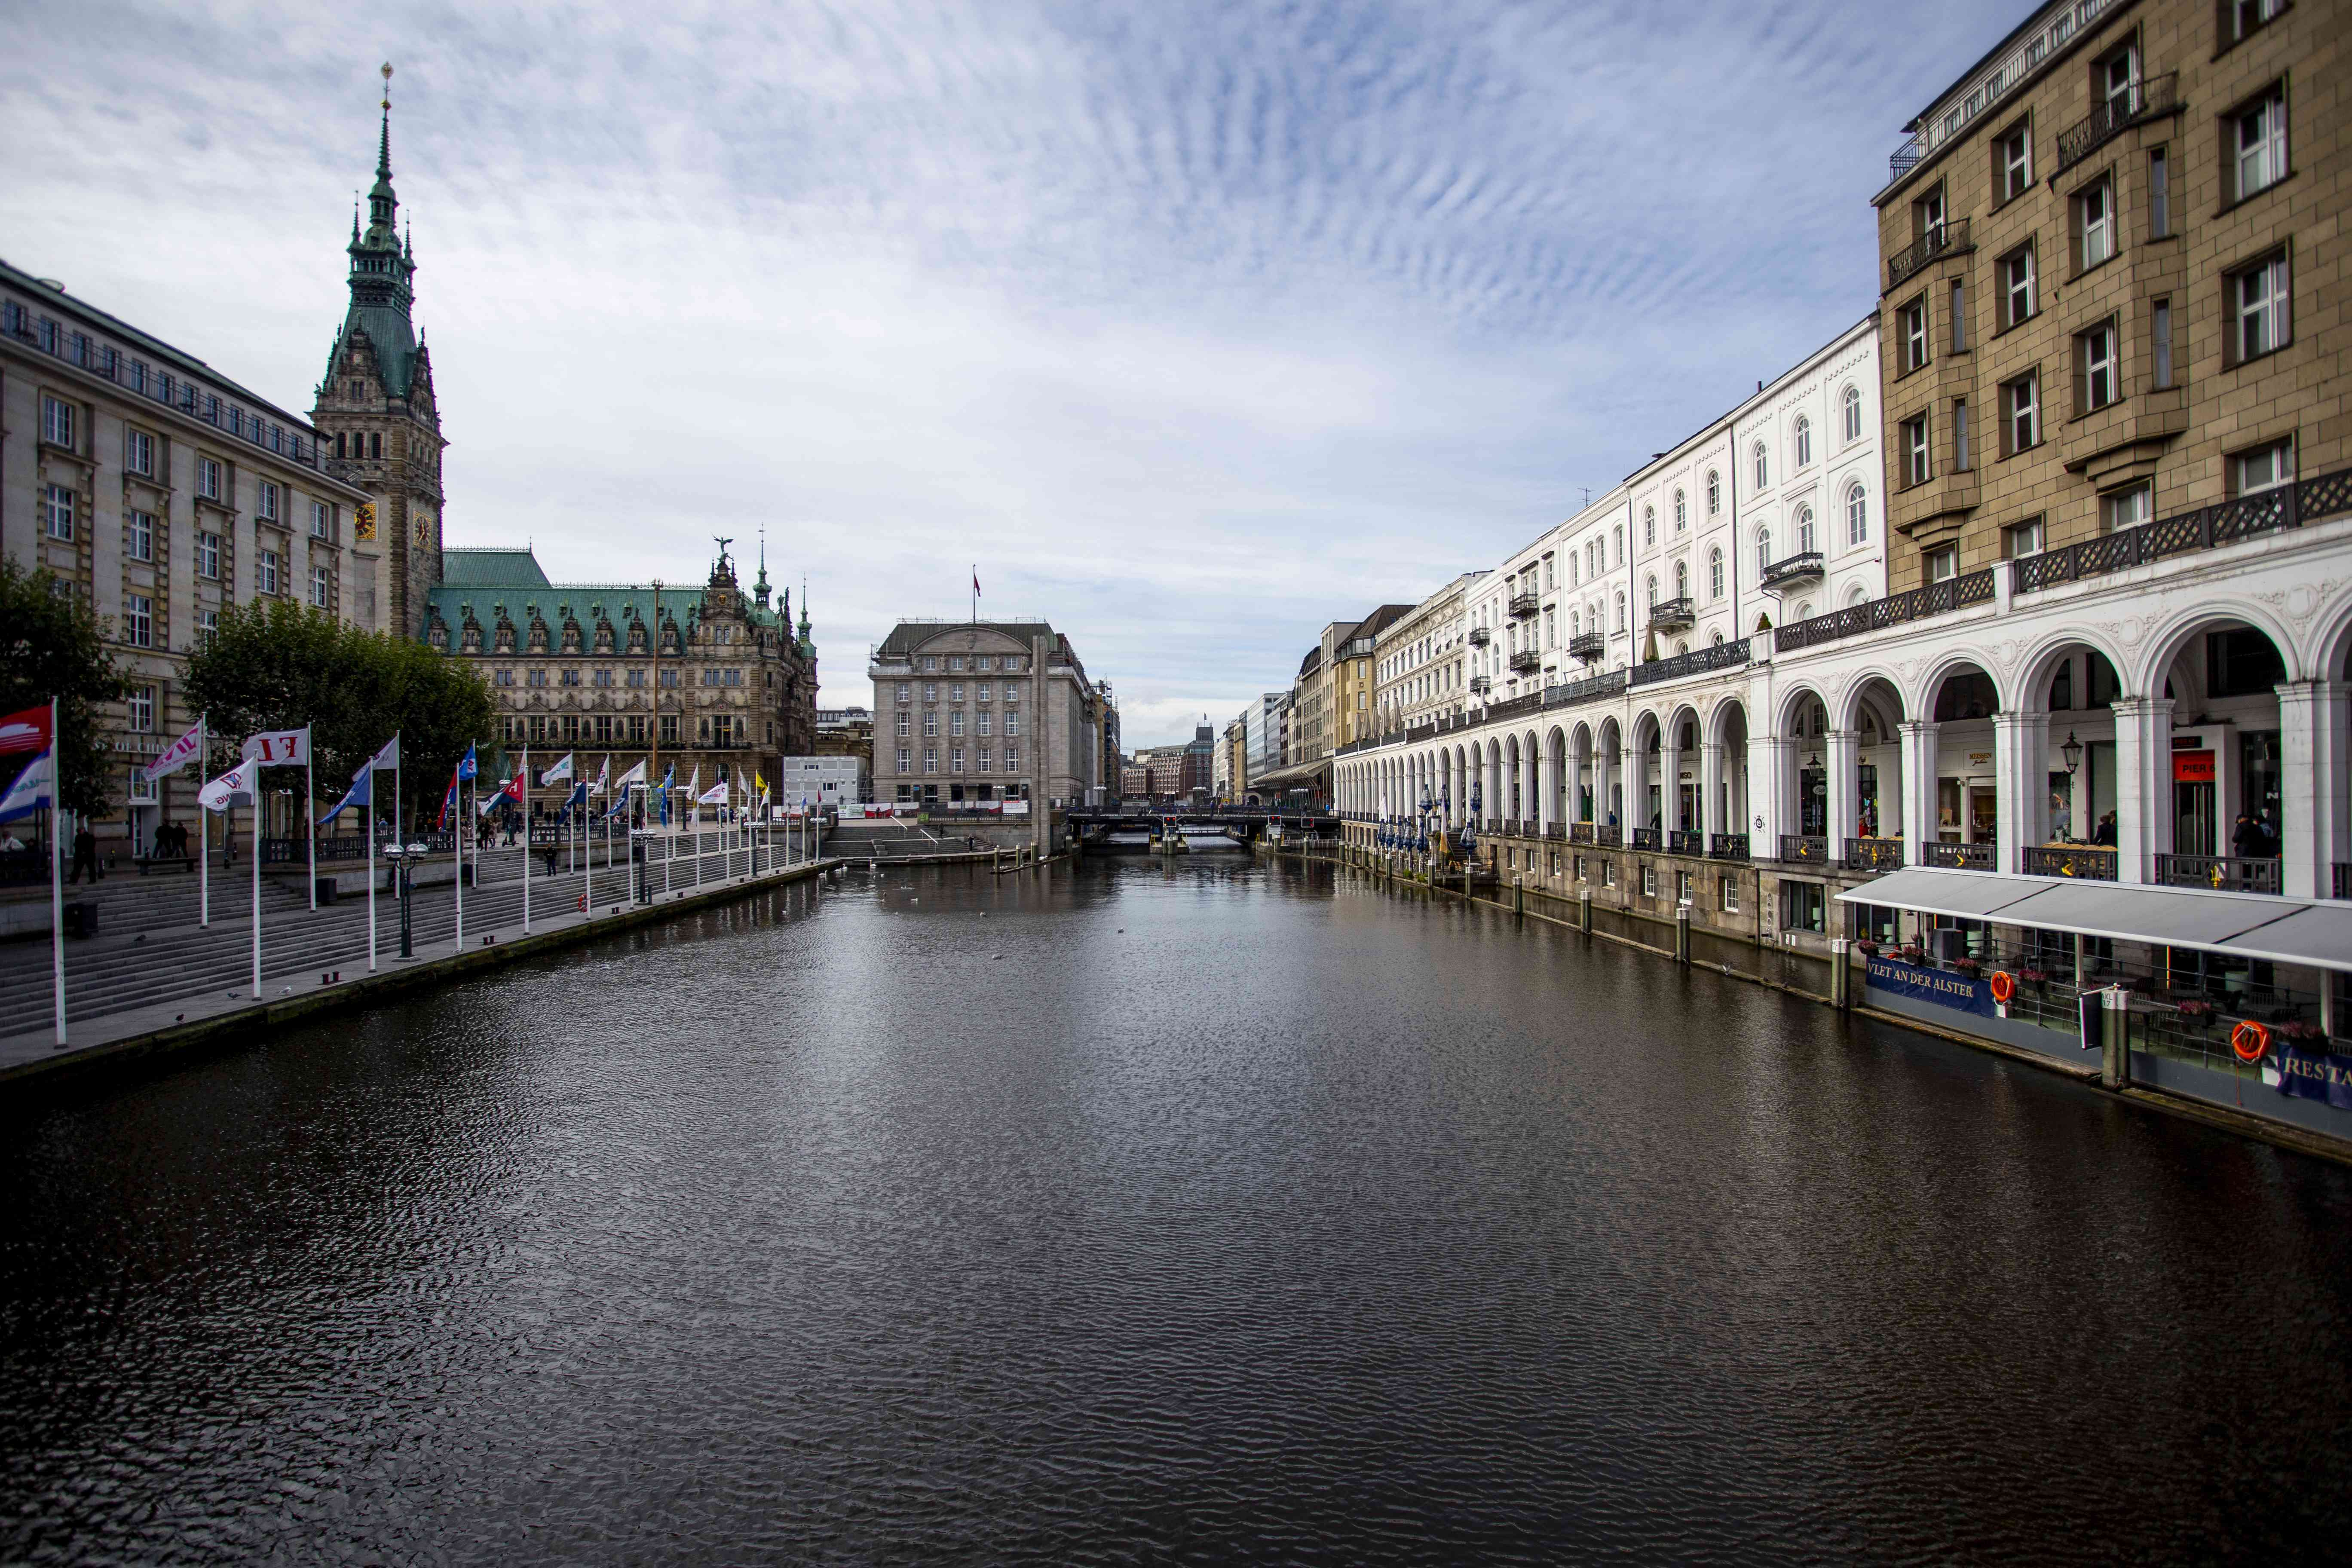 View of Alster Arcades and the surrounding buildings along the river